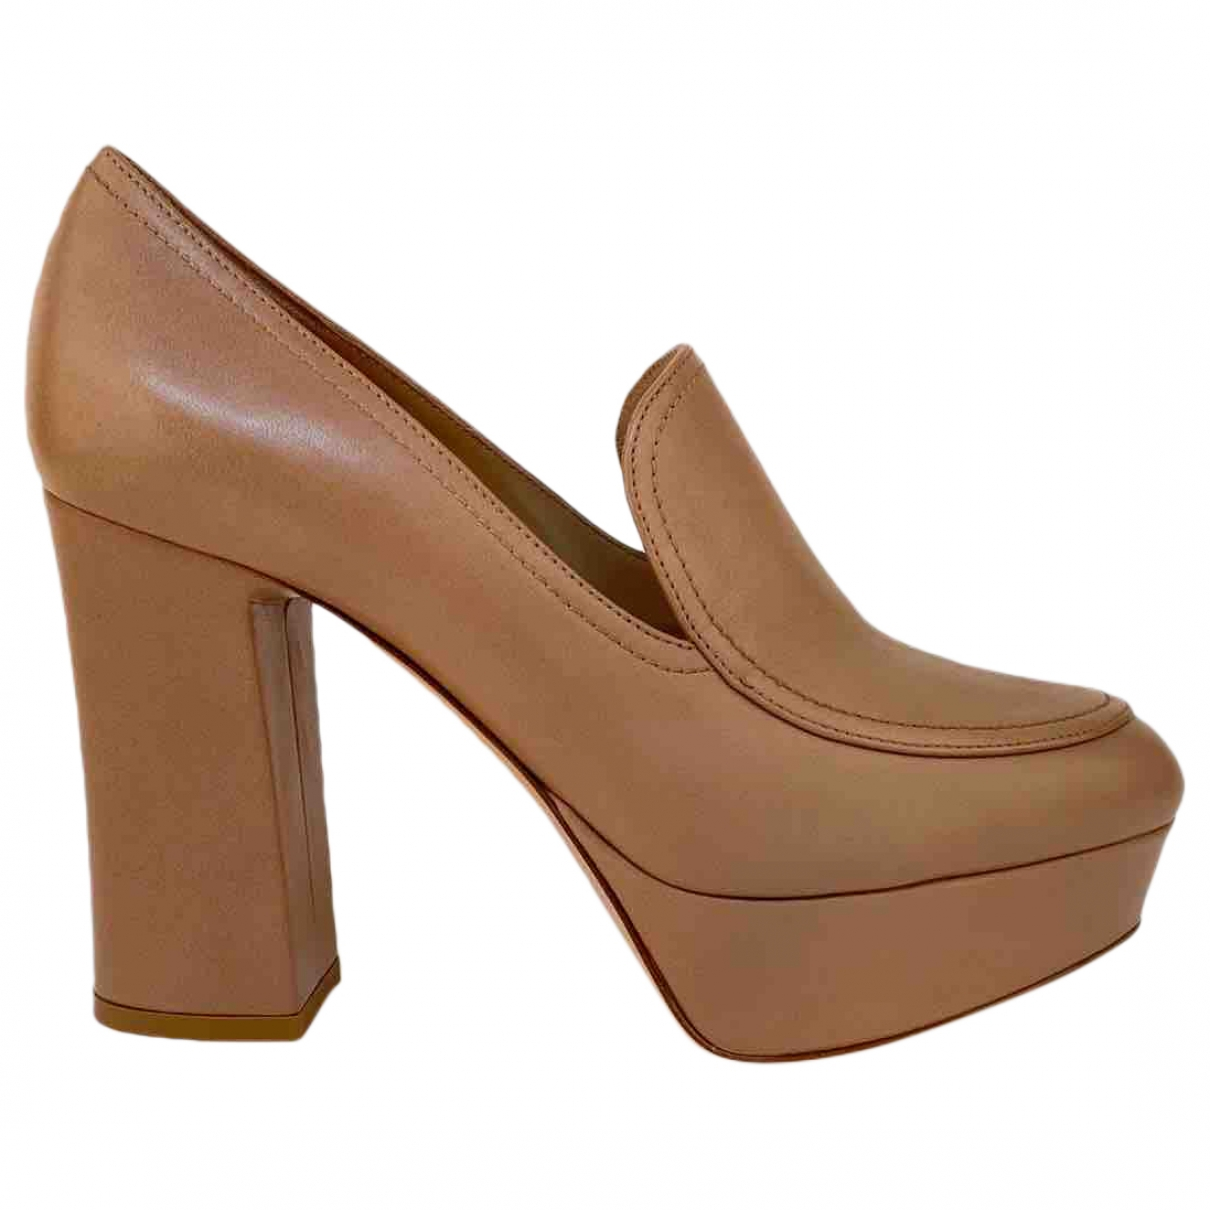 Gianvito Rossi \N Beige Leather Heels for Women 37.5 EU